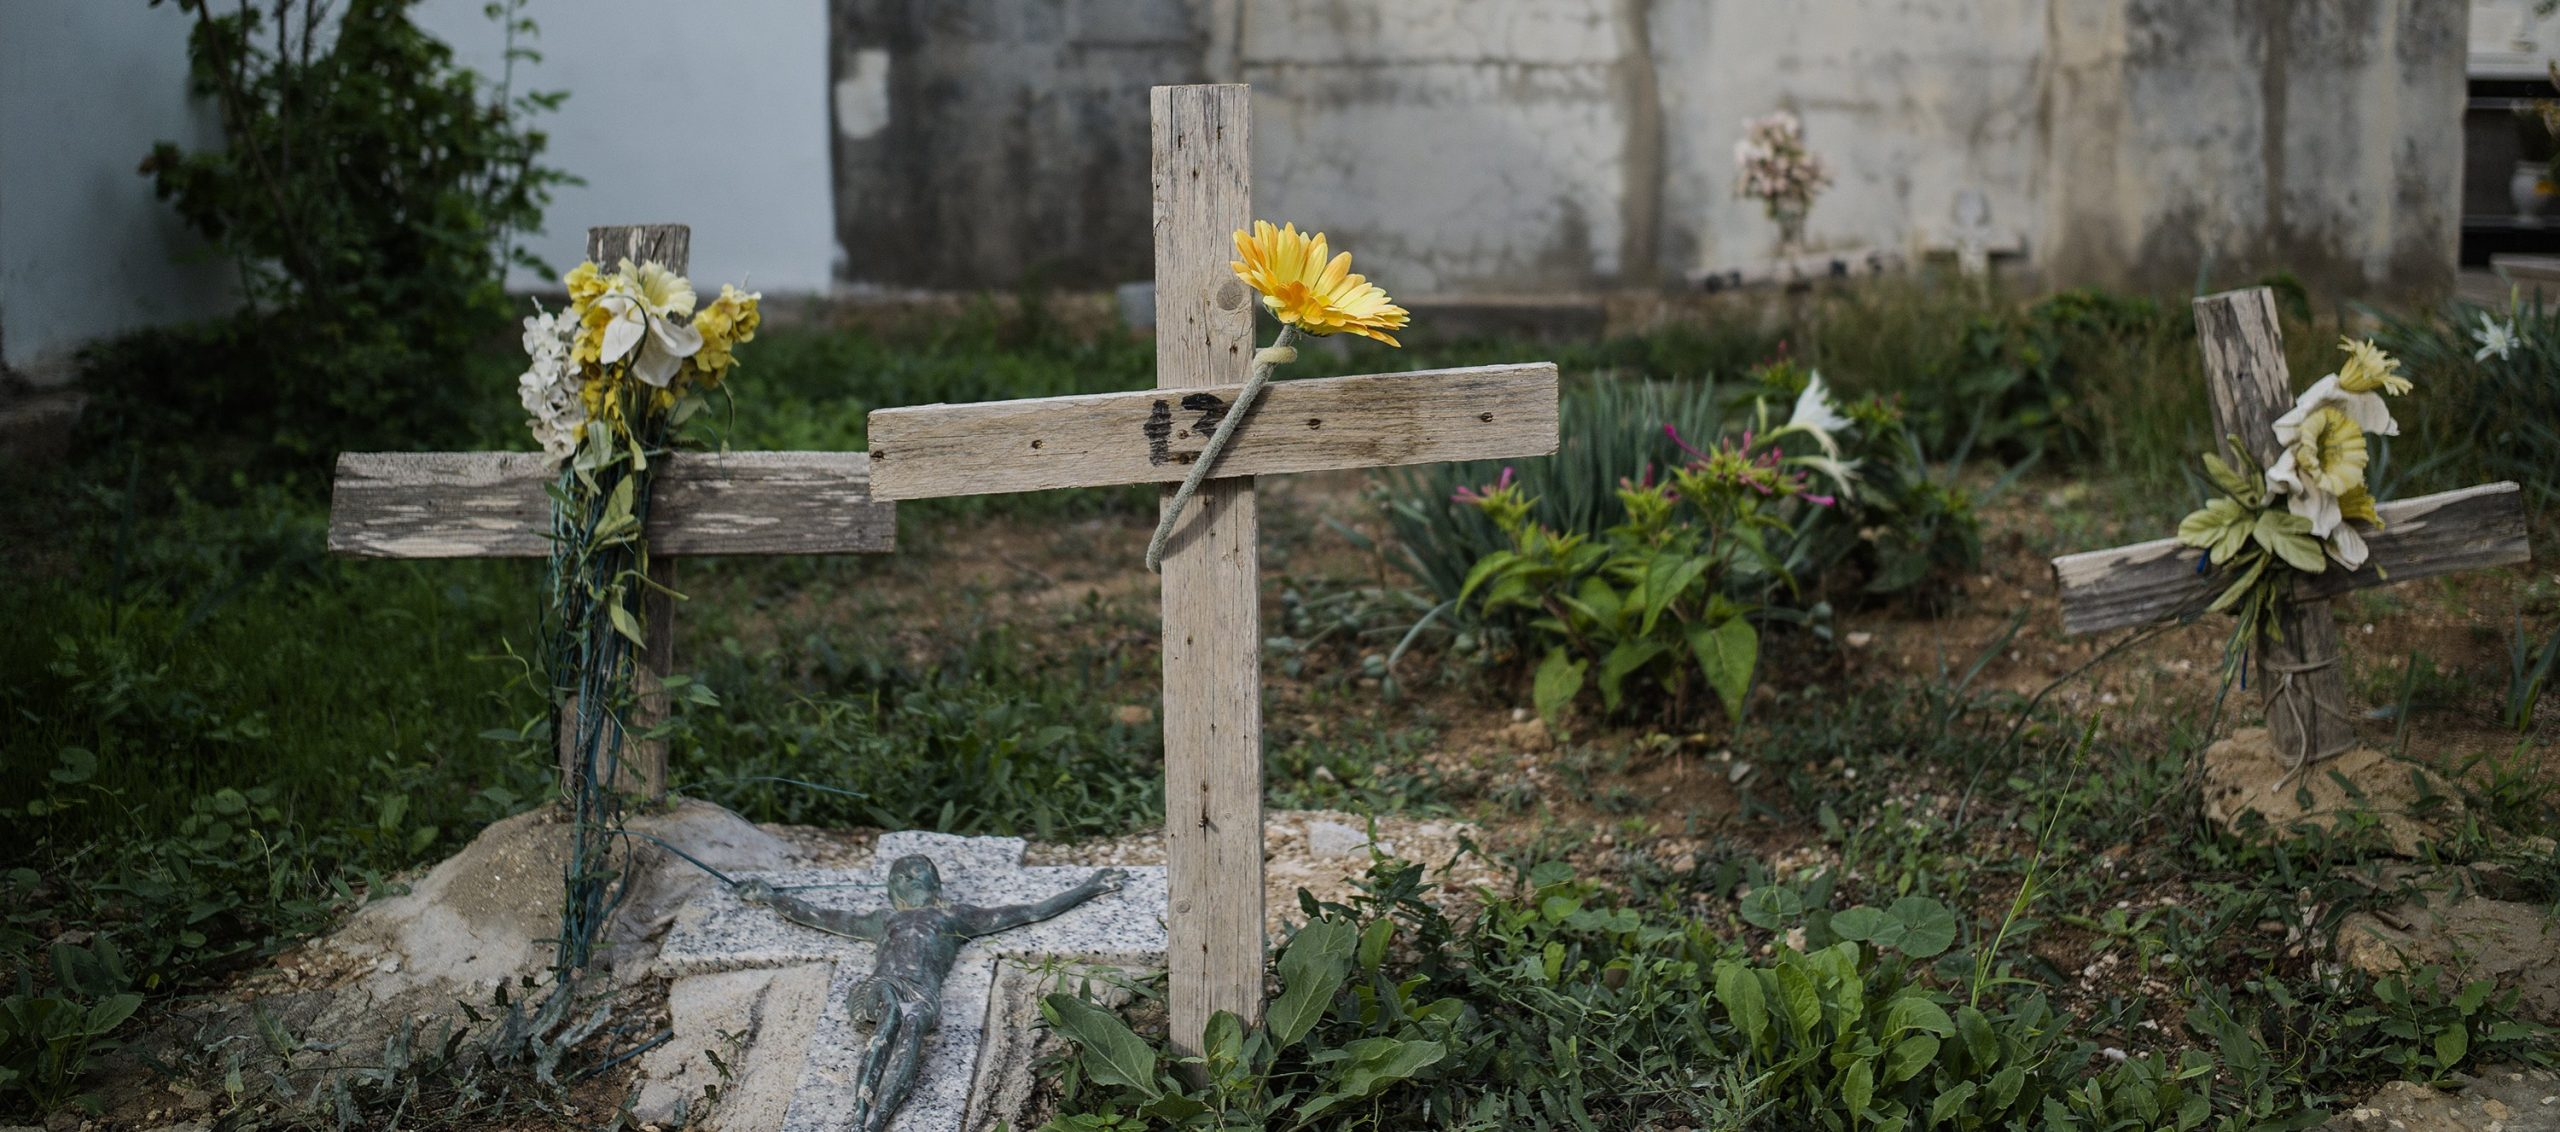 Getty-images-unidentified-migrant-tombs-Lampedusa